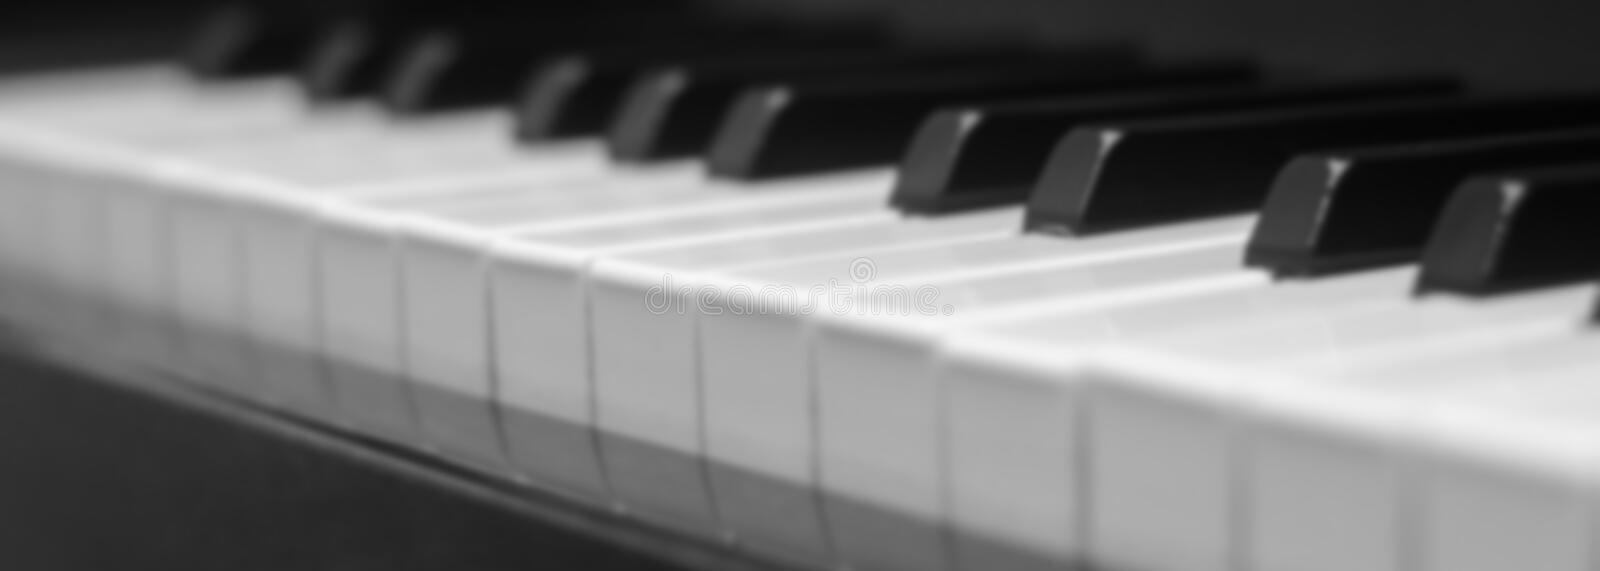 O piano fecha o close-up, vista lateral de um instrumento musical imagem de stock royalty free